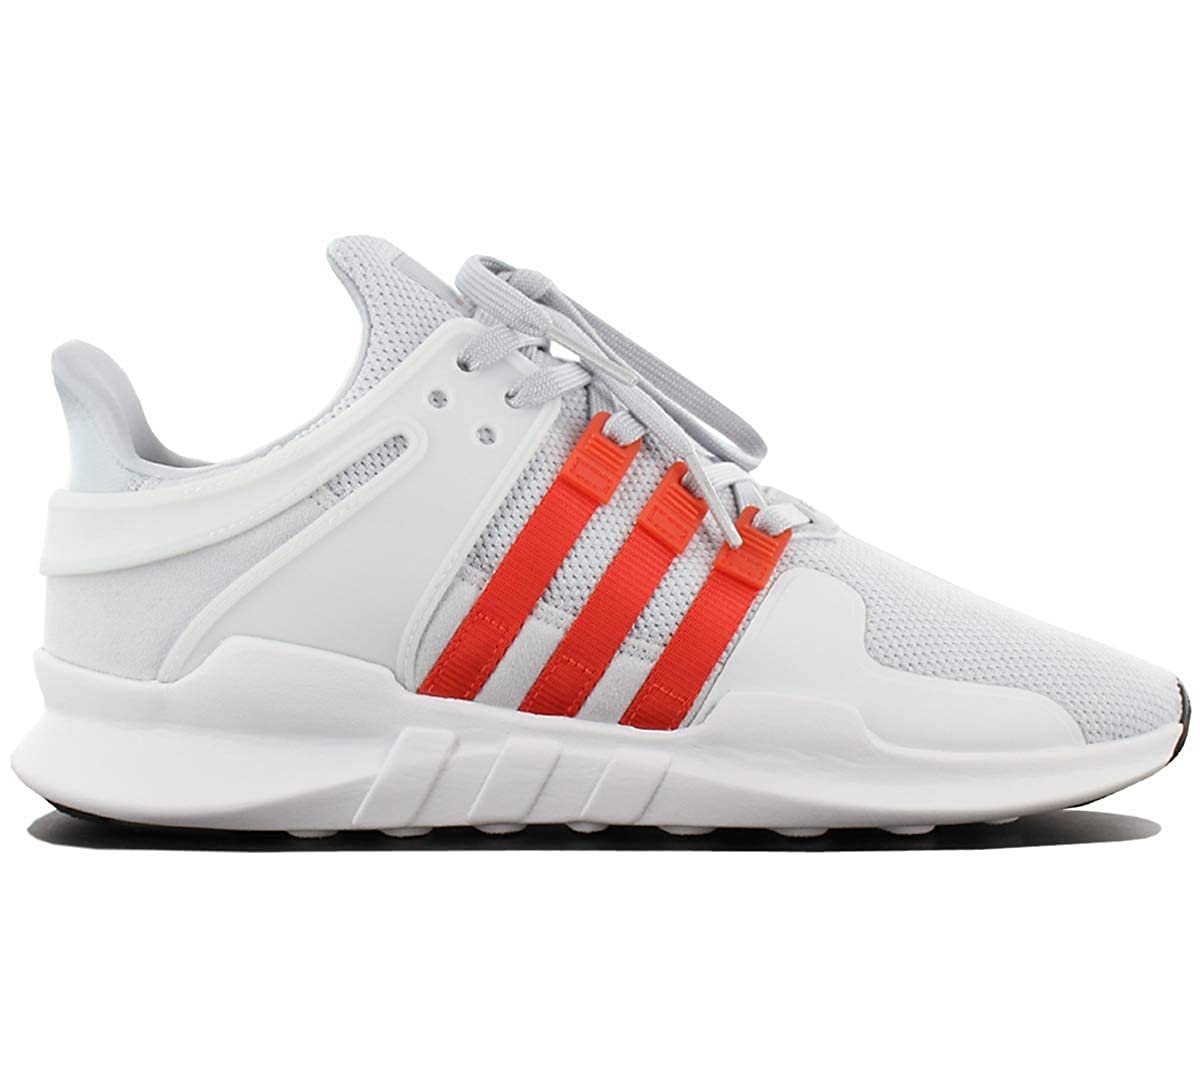 MultiCouleure (Gritra   Narfue   Ftwbla) Adidas EQT Support ADV Basket Mode Homme